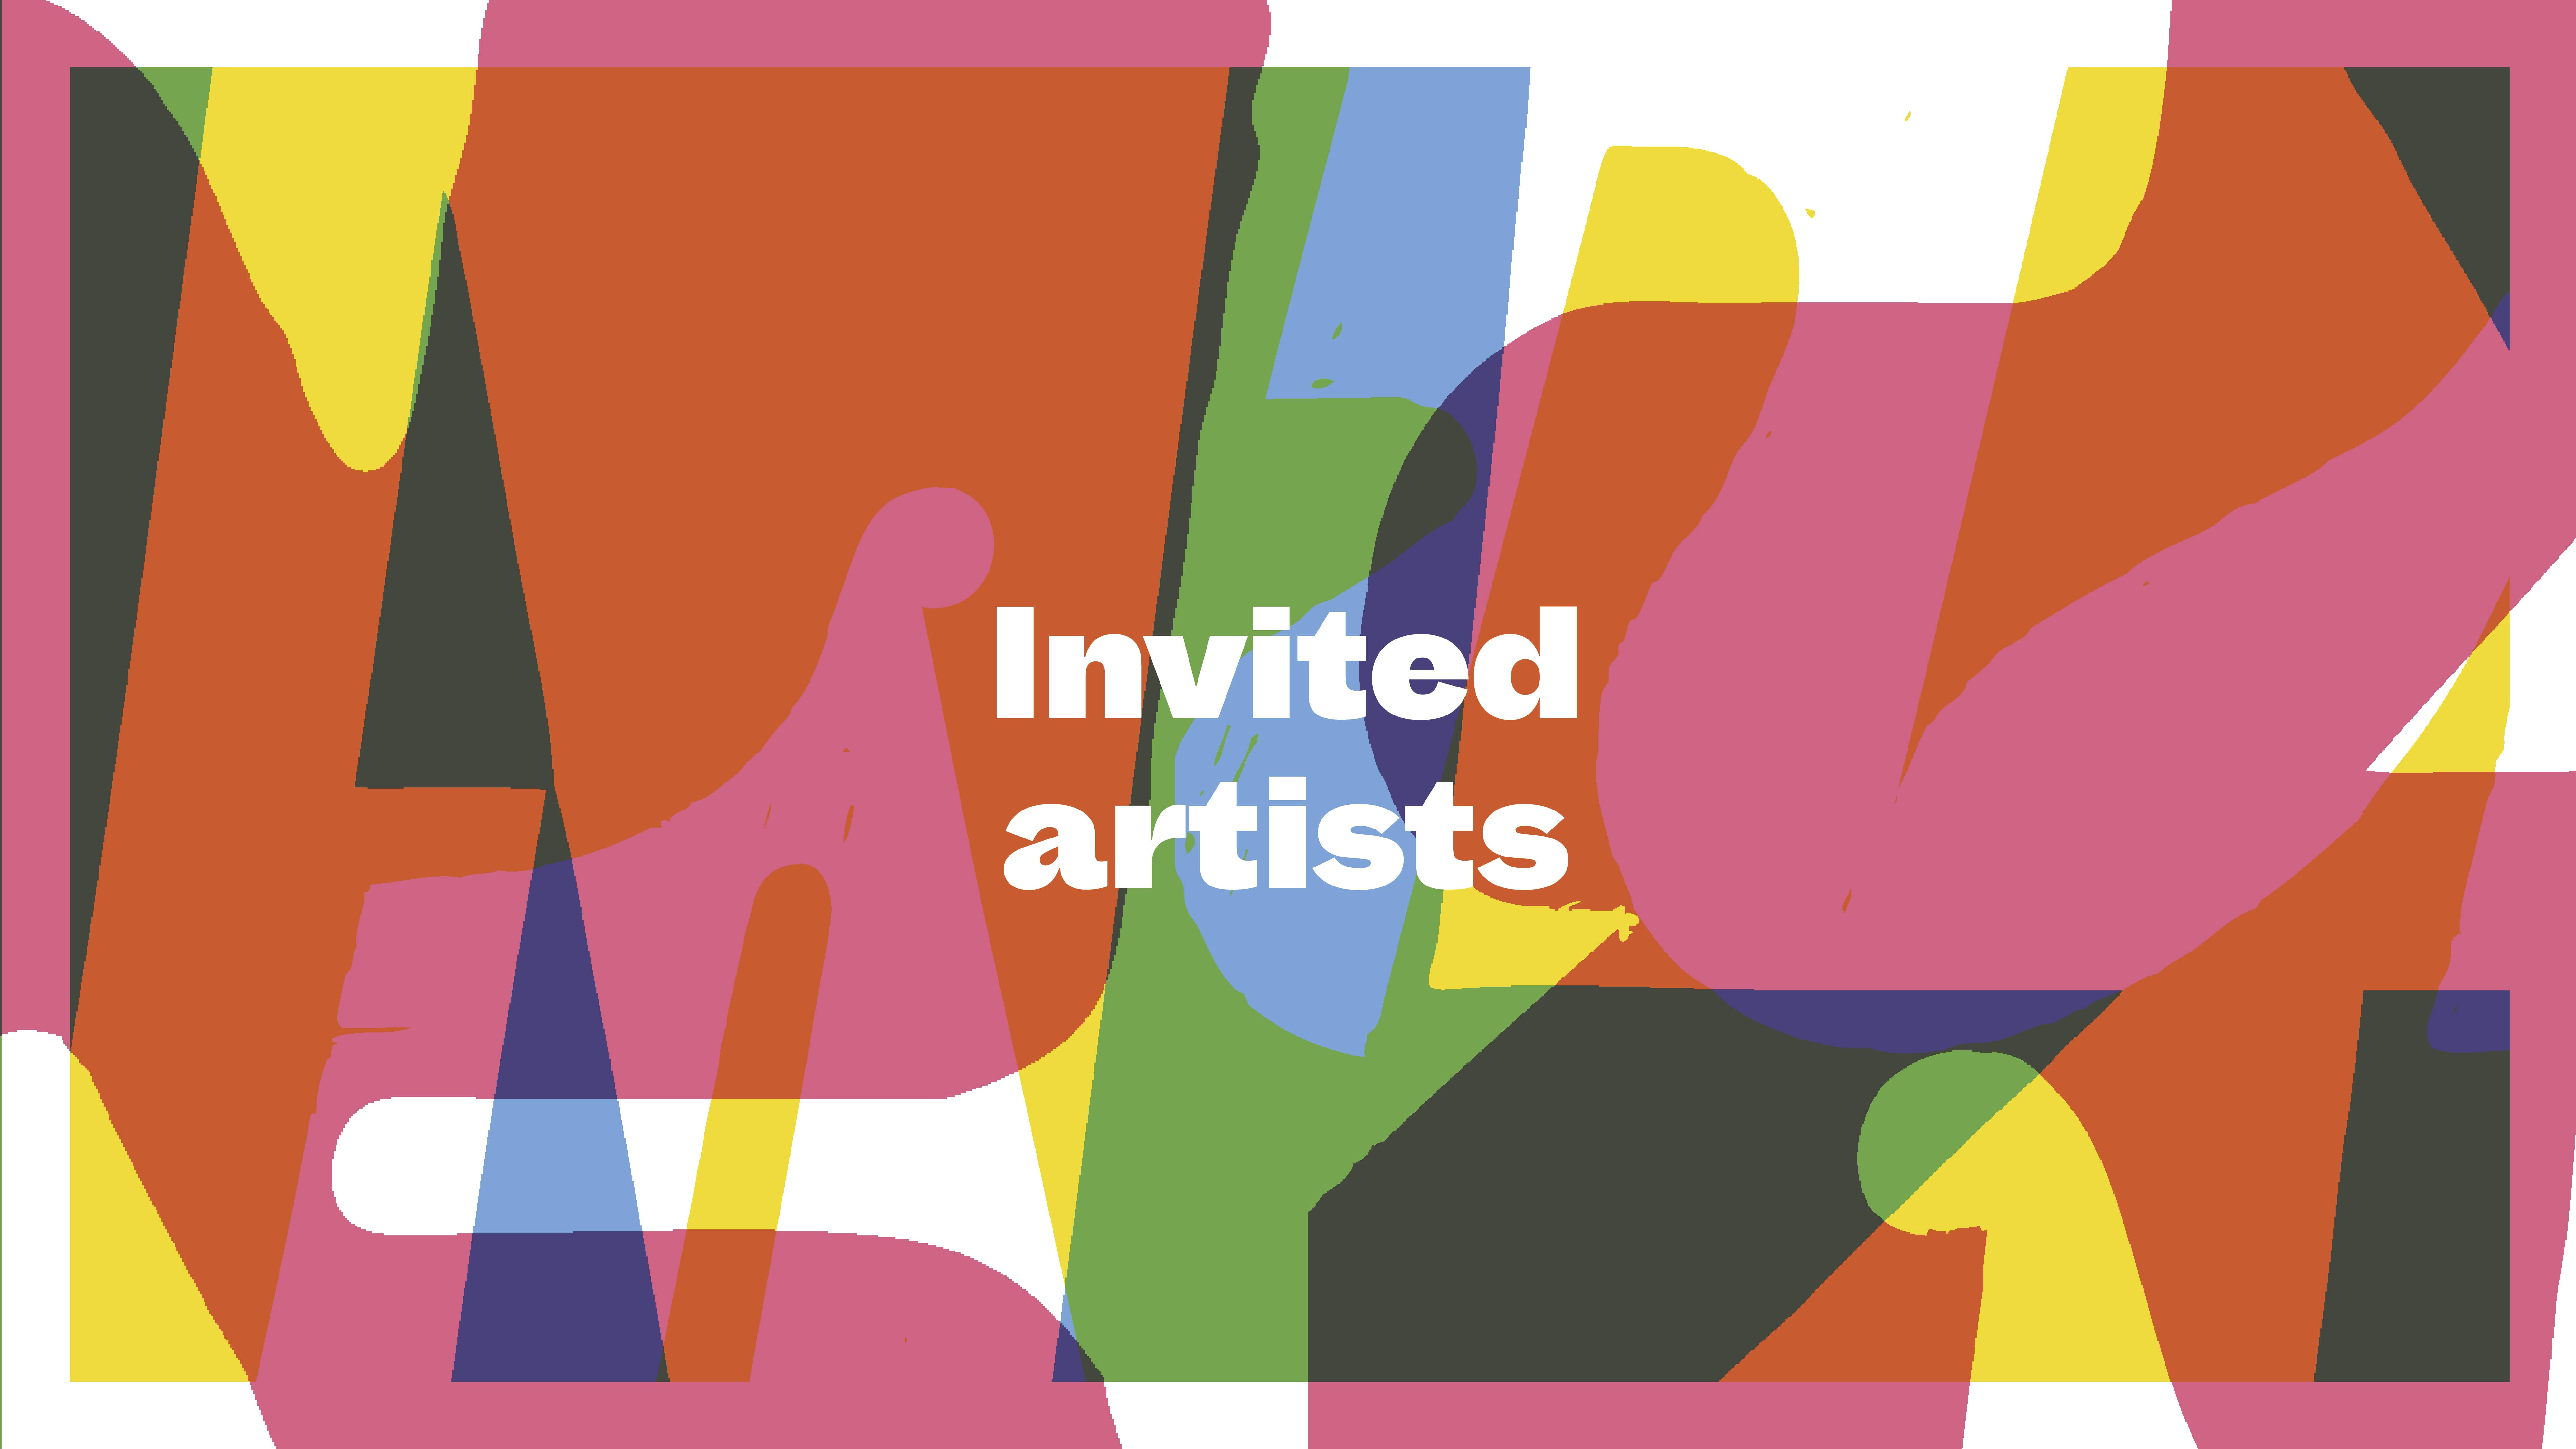 Invited artists